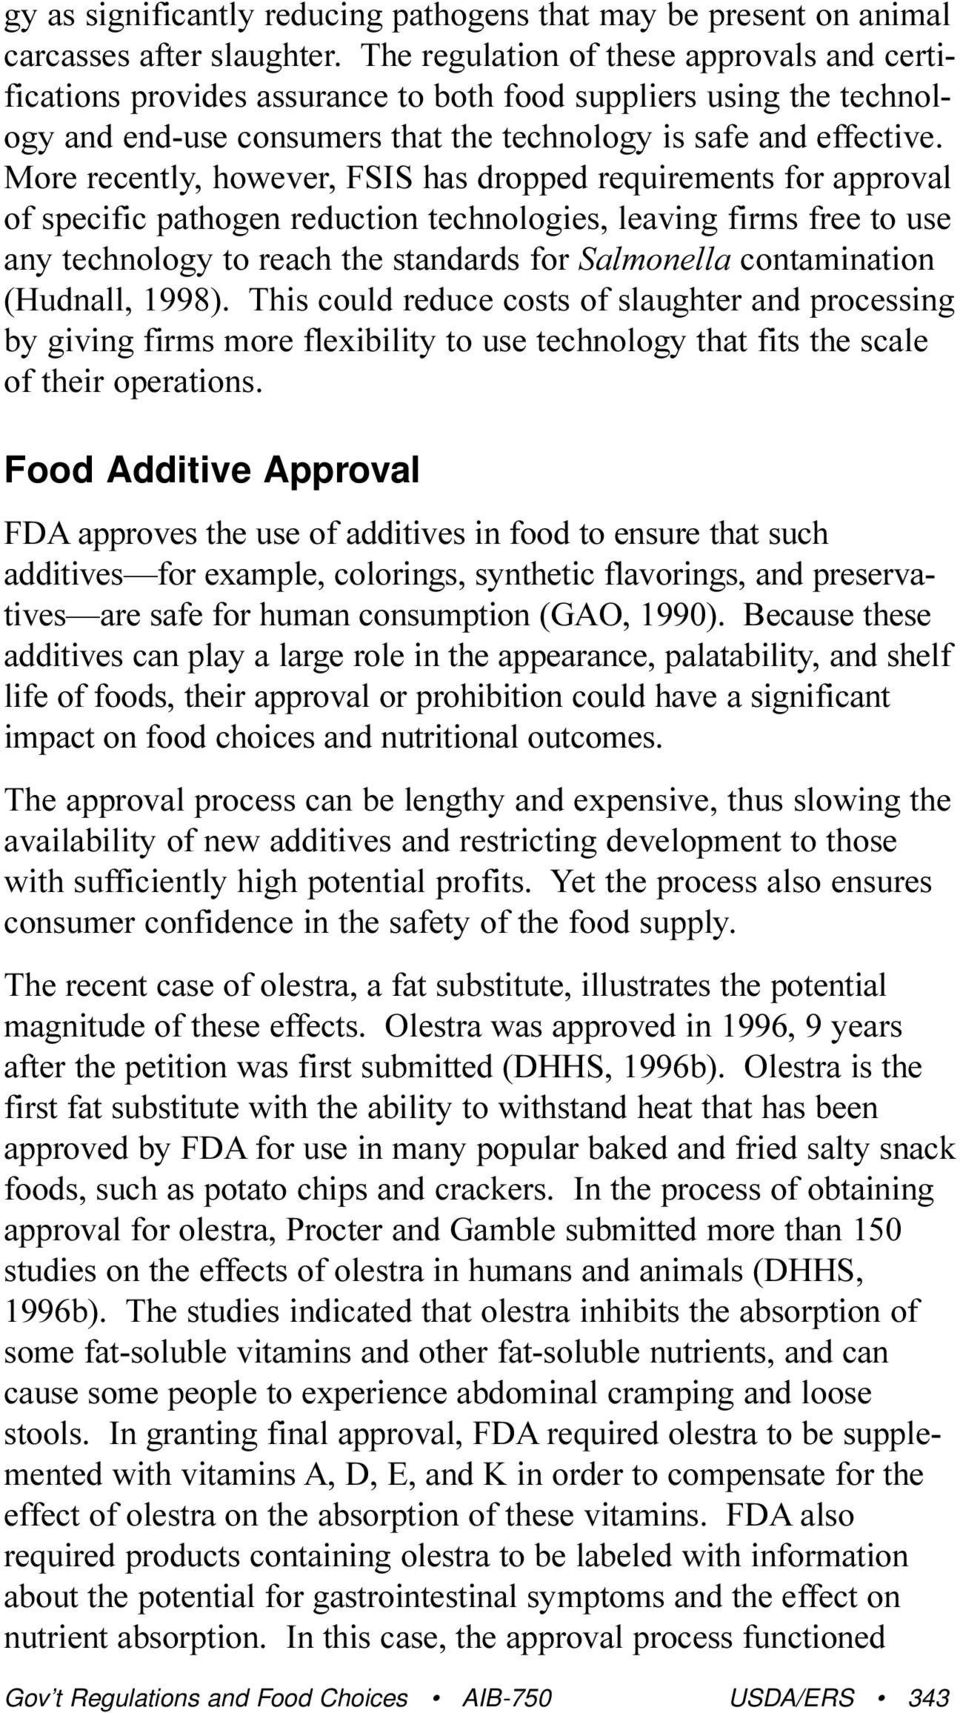 More recently, however, FSIS has dropped requirements for approval of specific pathogen reduction technologies, leaving firms free to use any technology to reach the standards for Salmonella